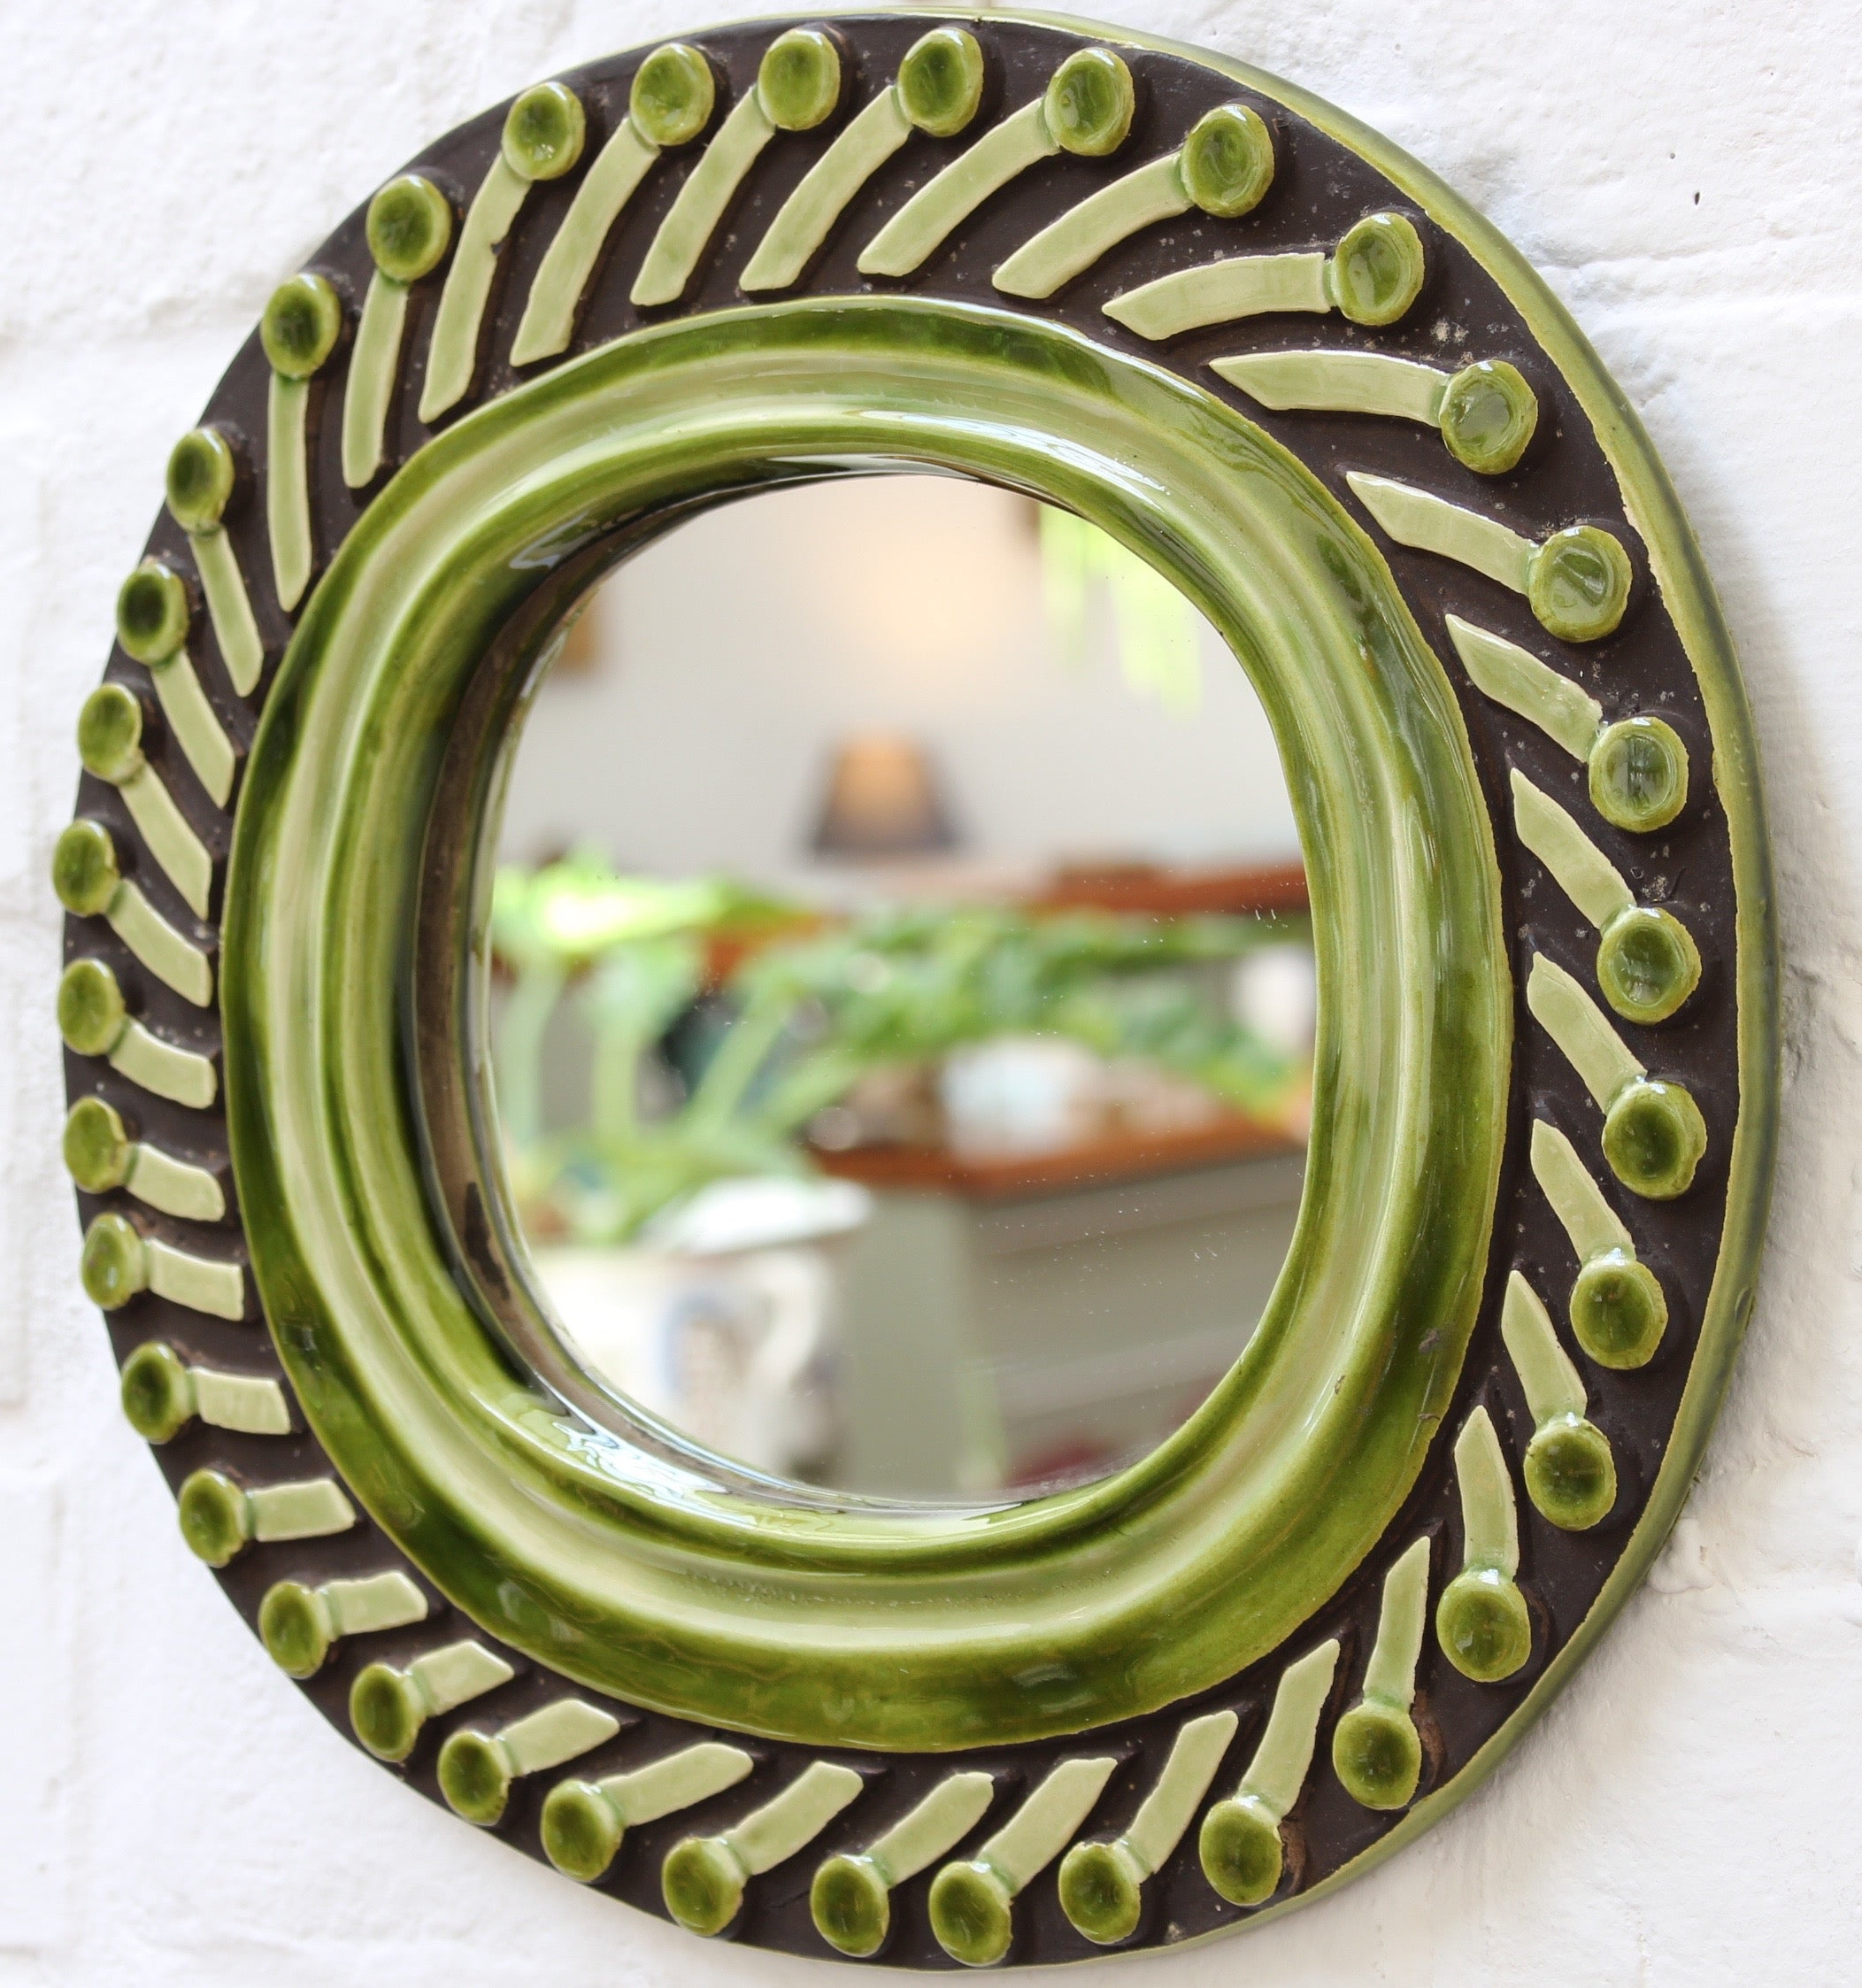 Decorative Ceramic Wall Mirror by François Lembo (circa 1960s)